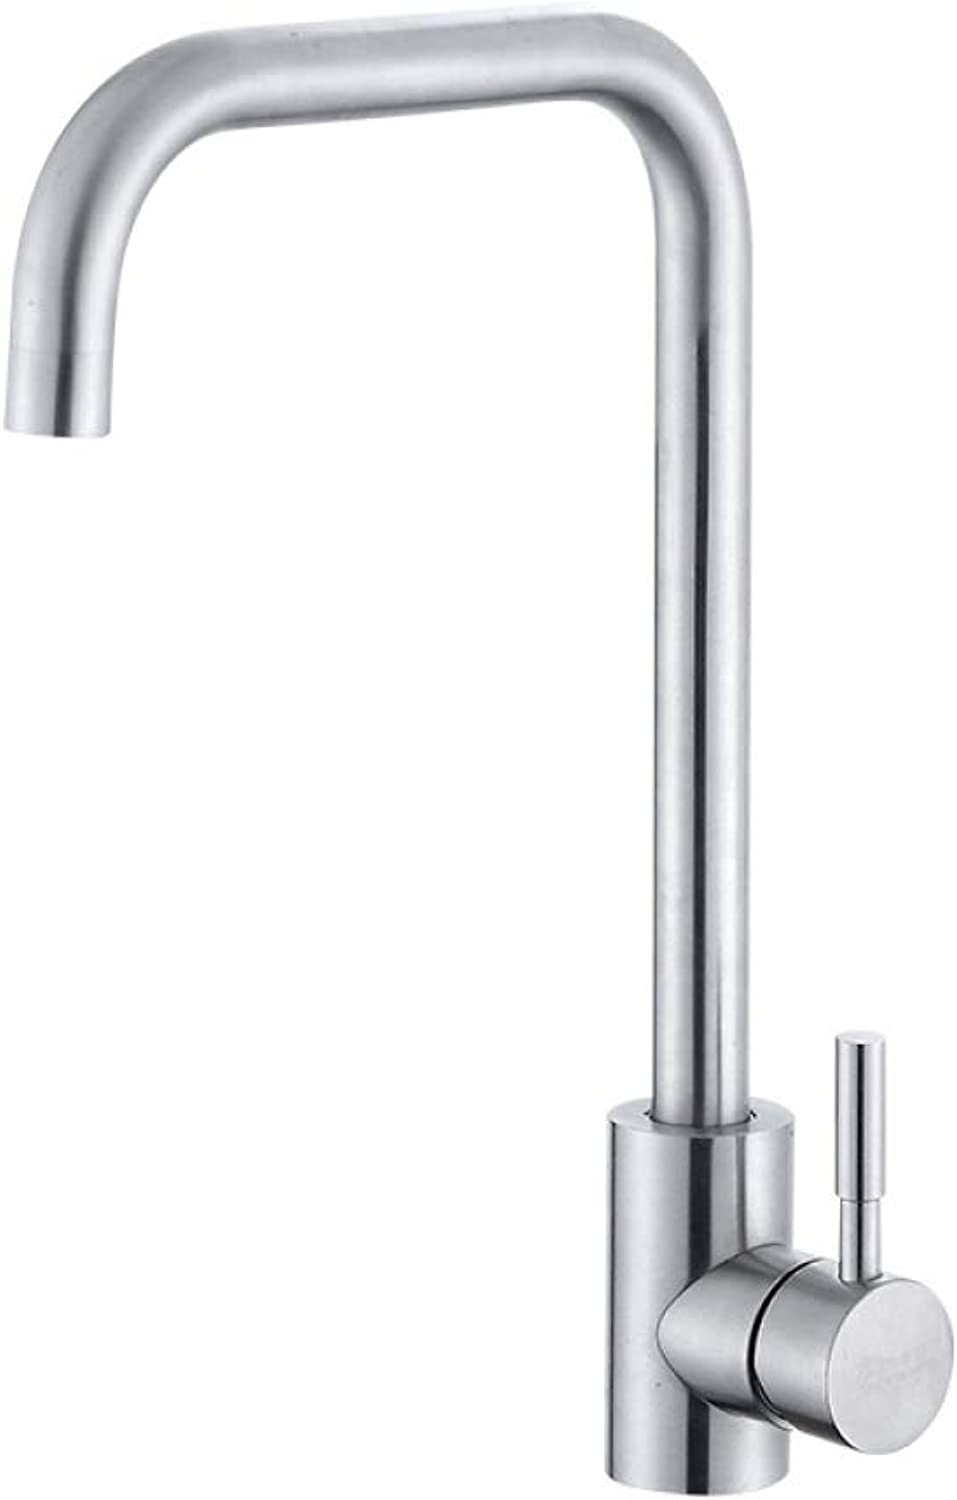 Glz Tap Faucet Stainless Steel Kitchen Faucet